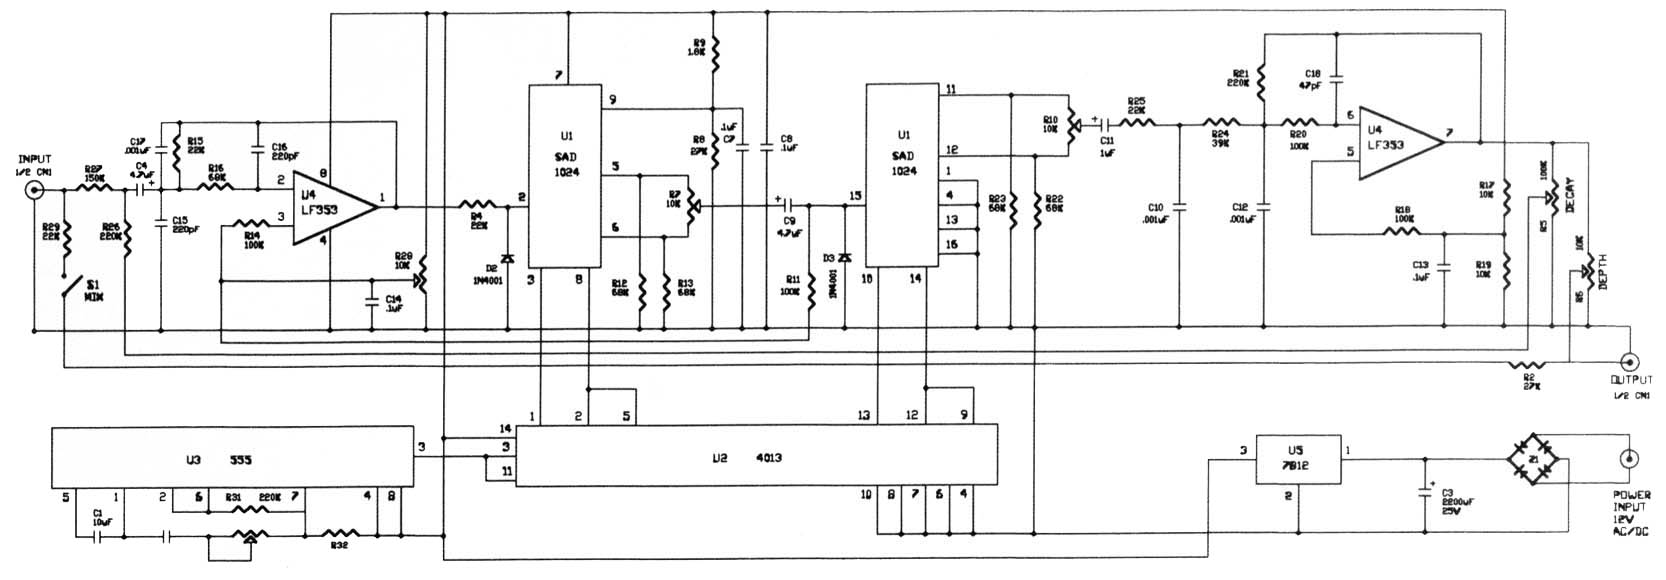 Wiring Diagram Dod Chorus Pedal Page 3 And Schematics Guitar Diagrams Index Of Diy Delay Echo Samplers Stompbo Pedals Schematic